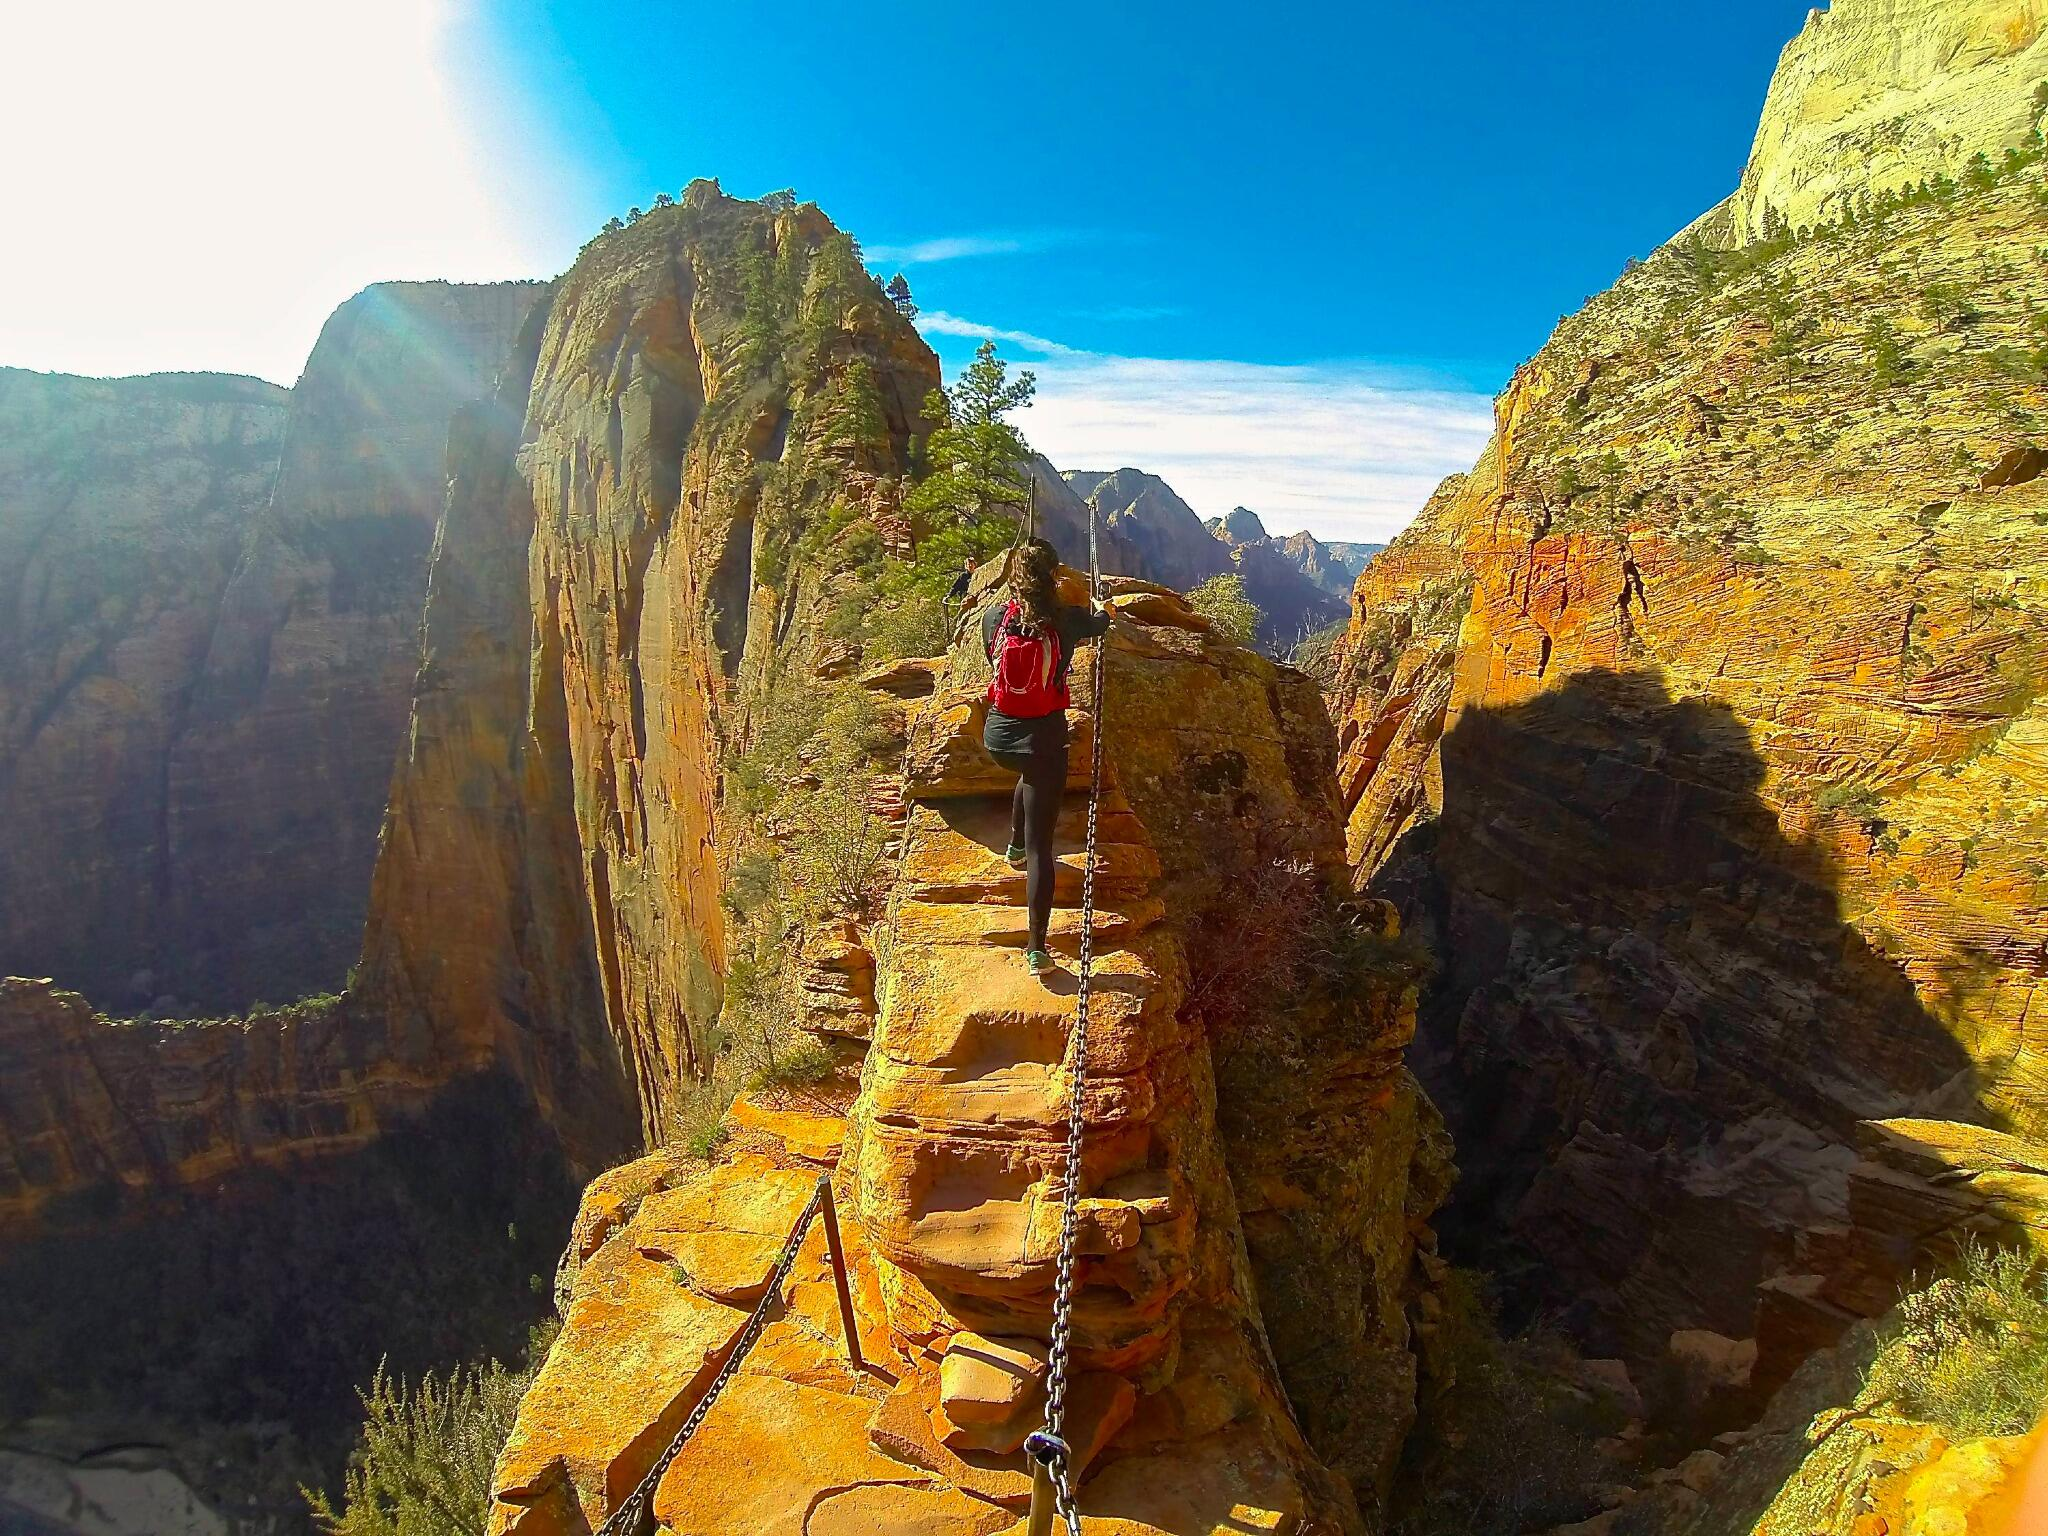 Exploring Zion National Park with Alexis Wiley. http://t.co/fvfhkghdyG